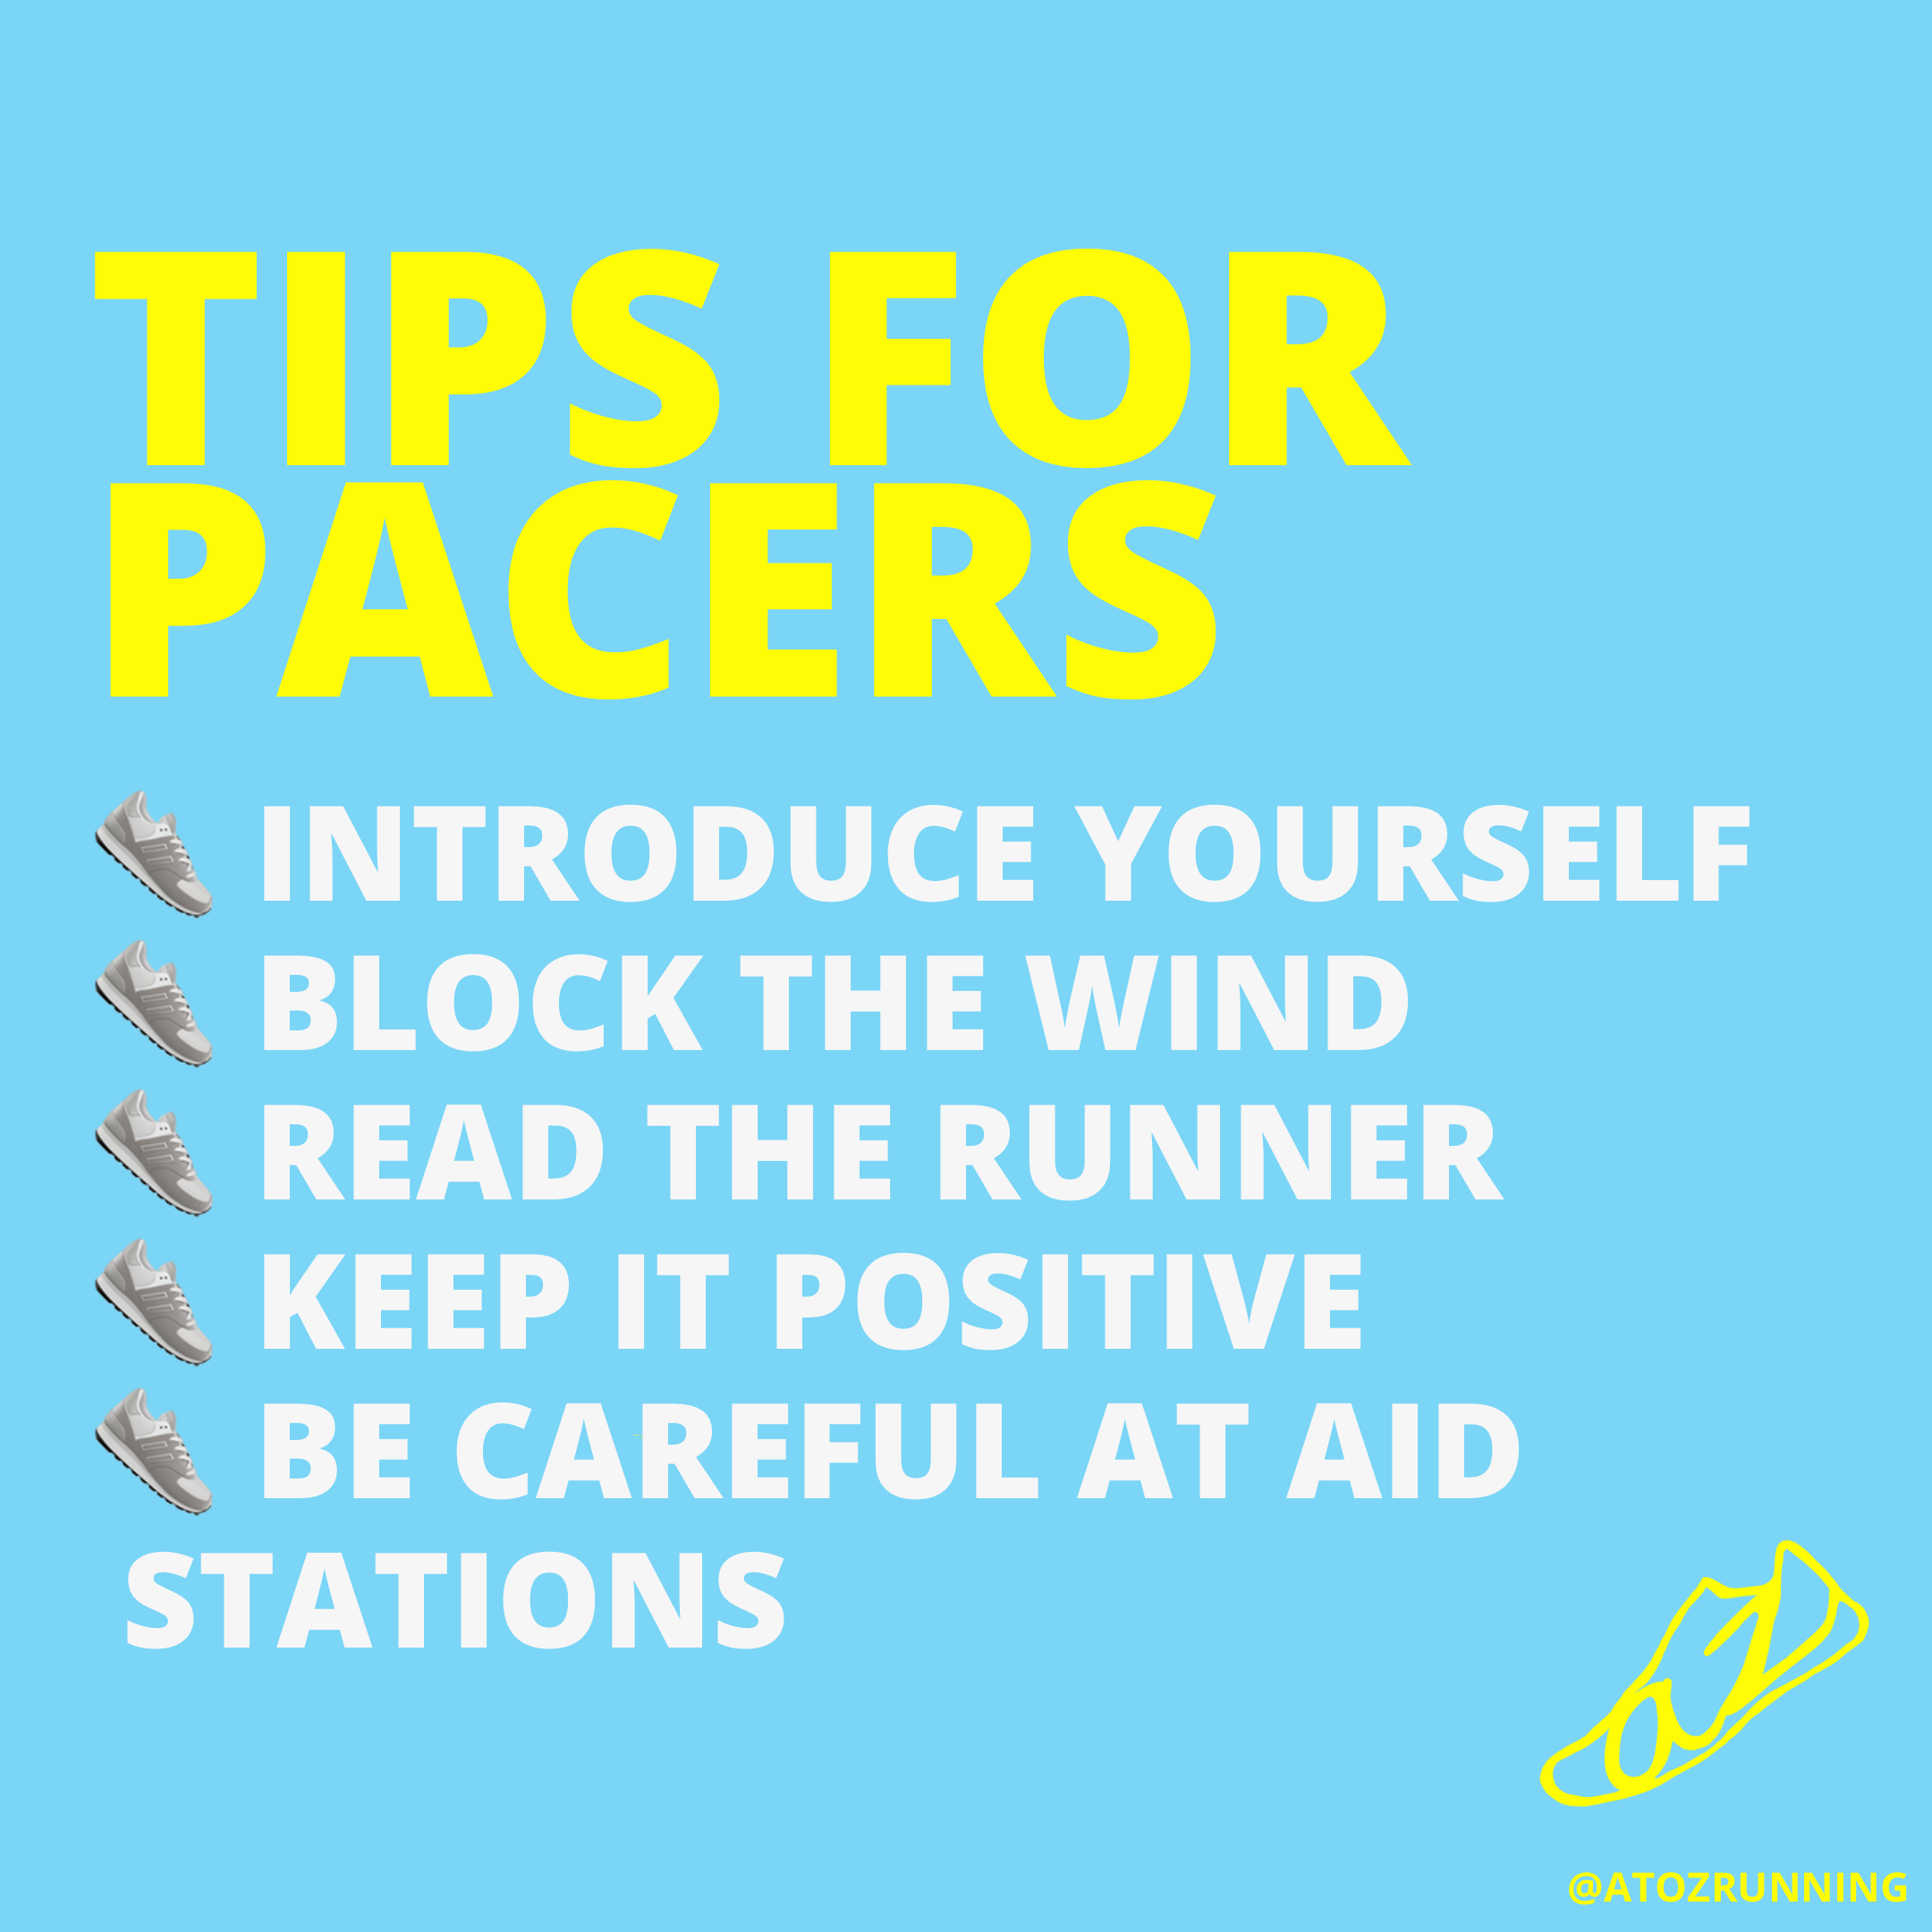 Tips for pacers